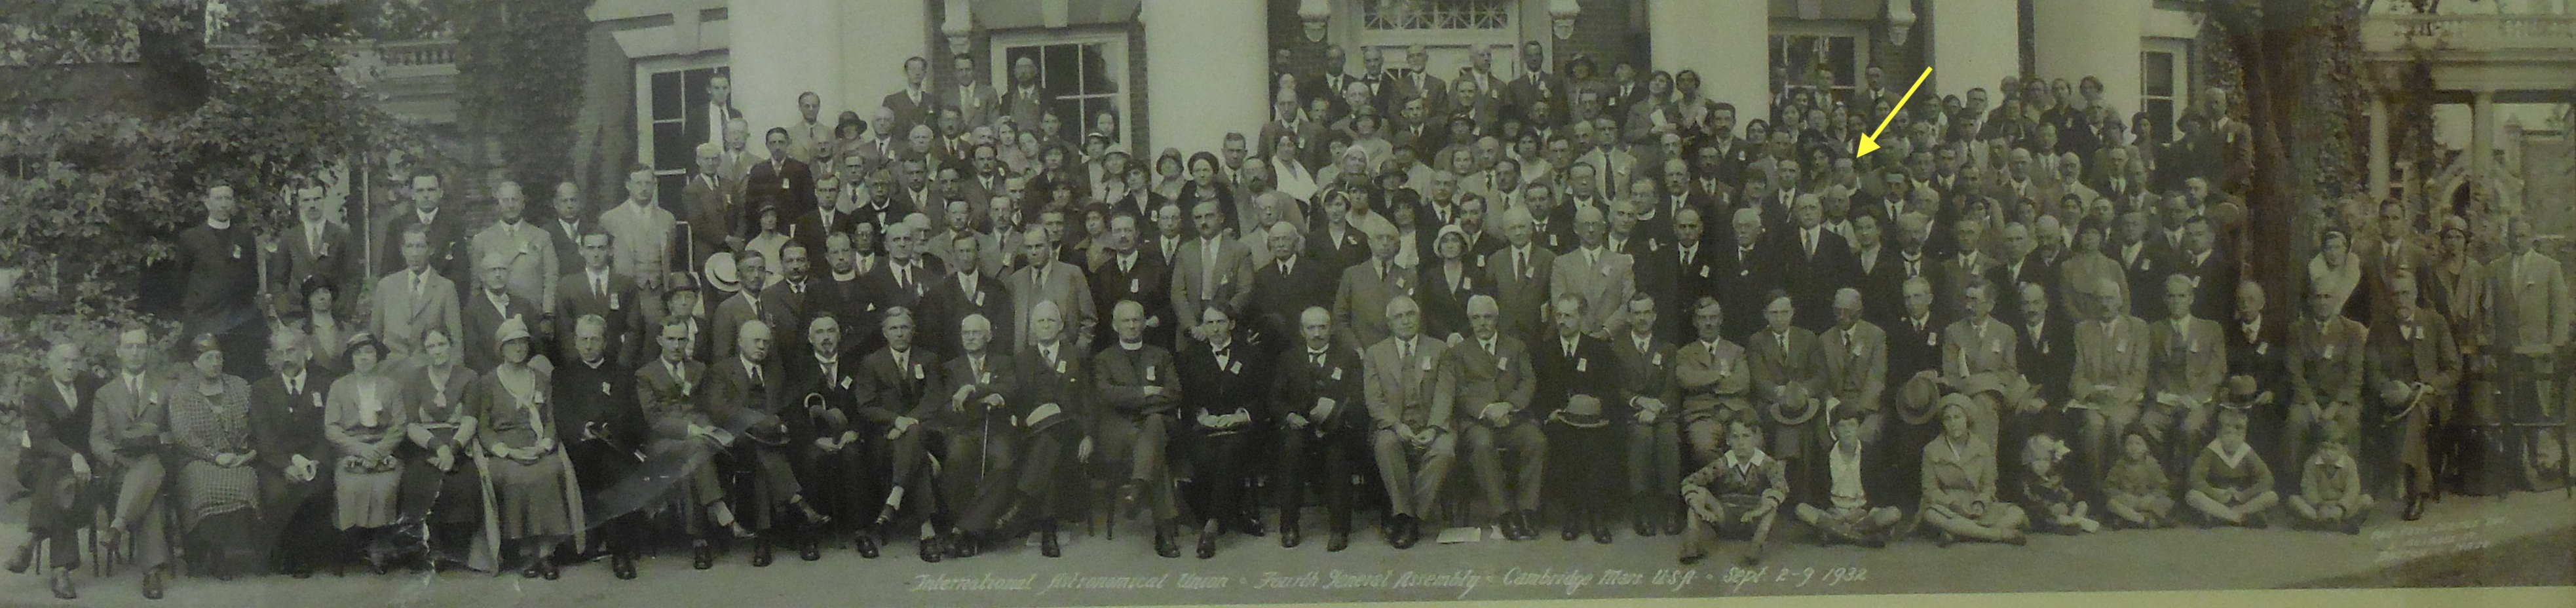 Lemaitre at IAU in 1932.